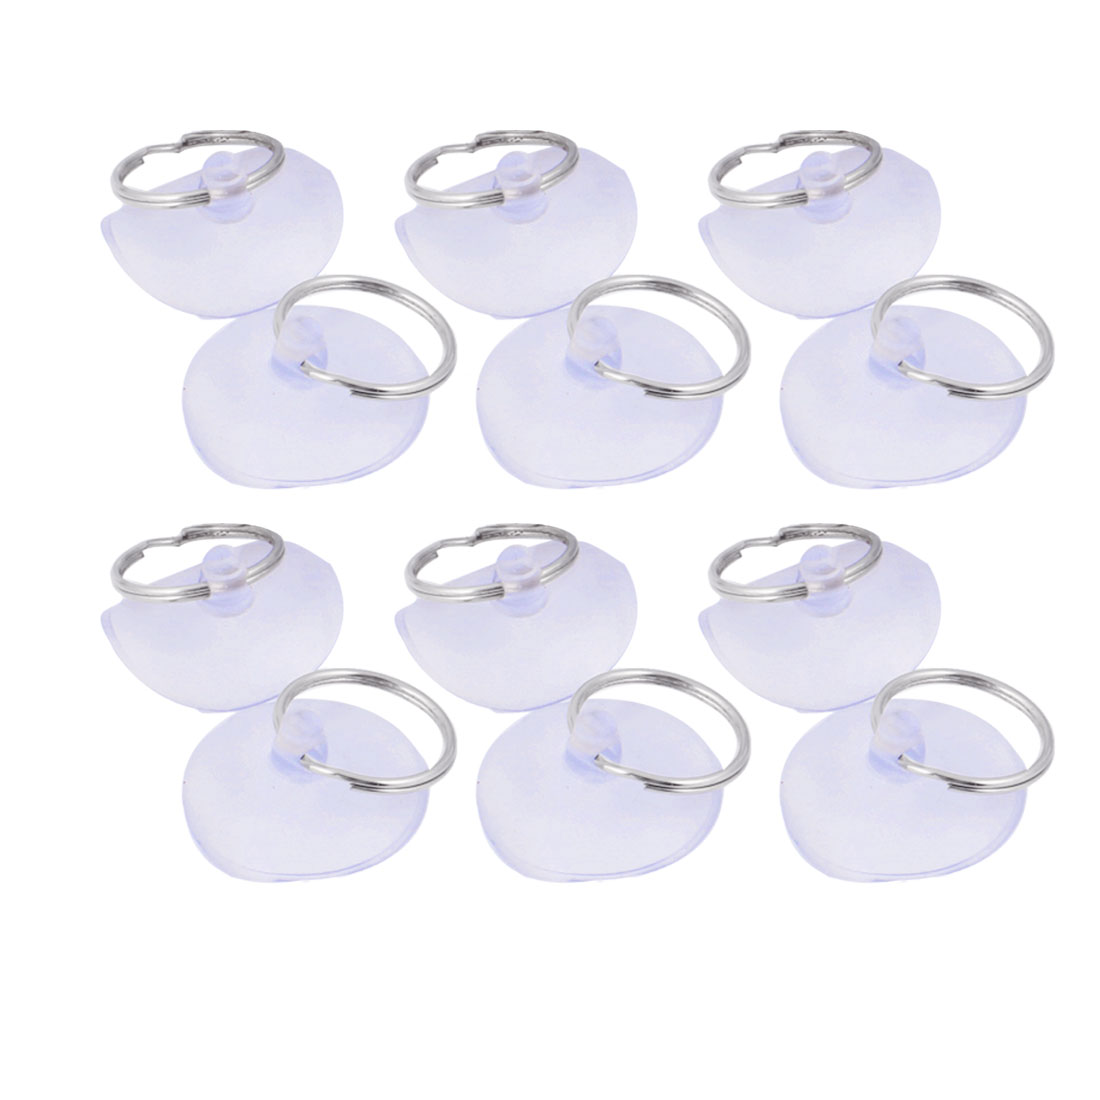 12 Pcs Clear Blue 40mm Dia PVC Metal Hook Home Bathoom Towel Suction Cups